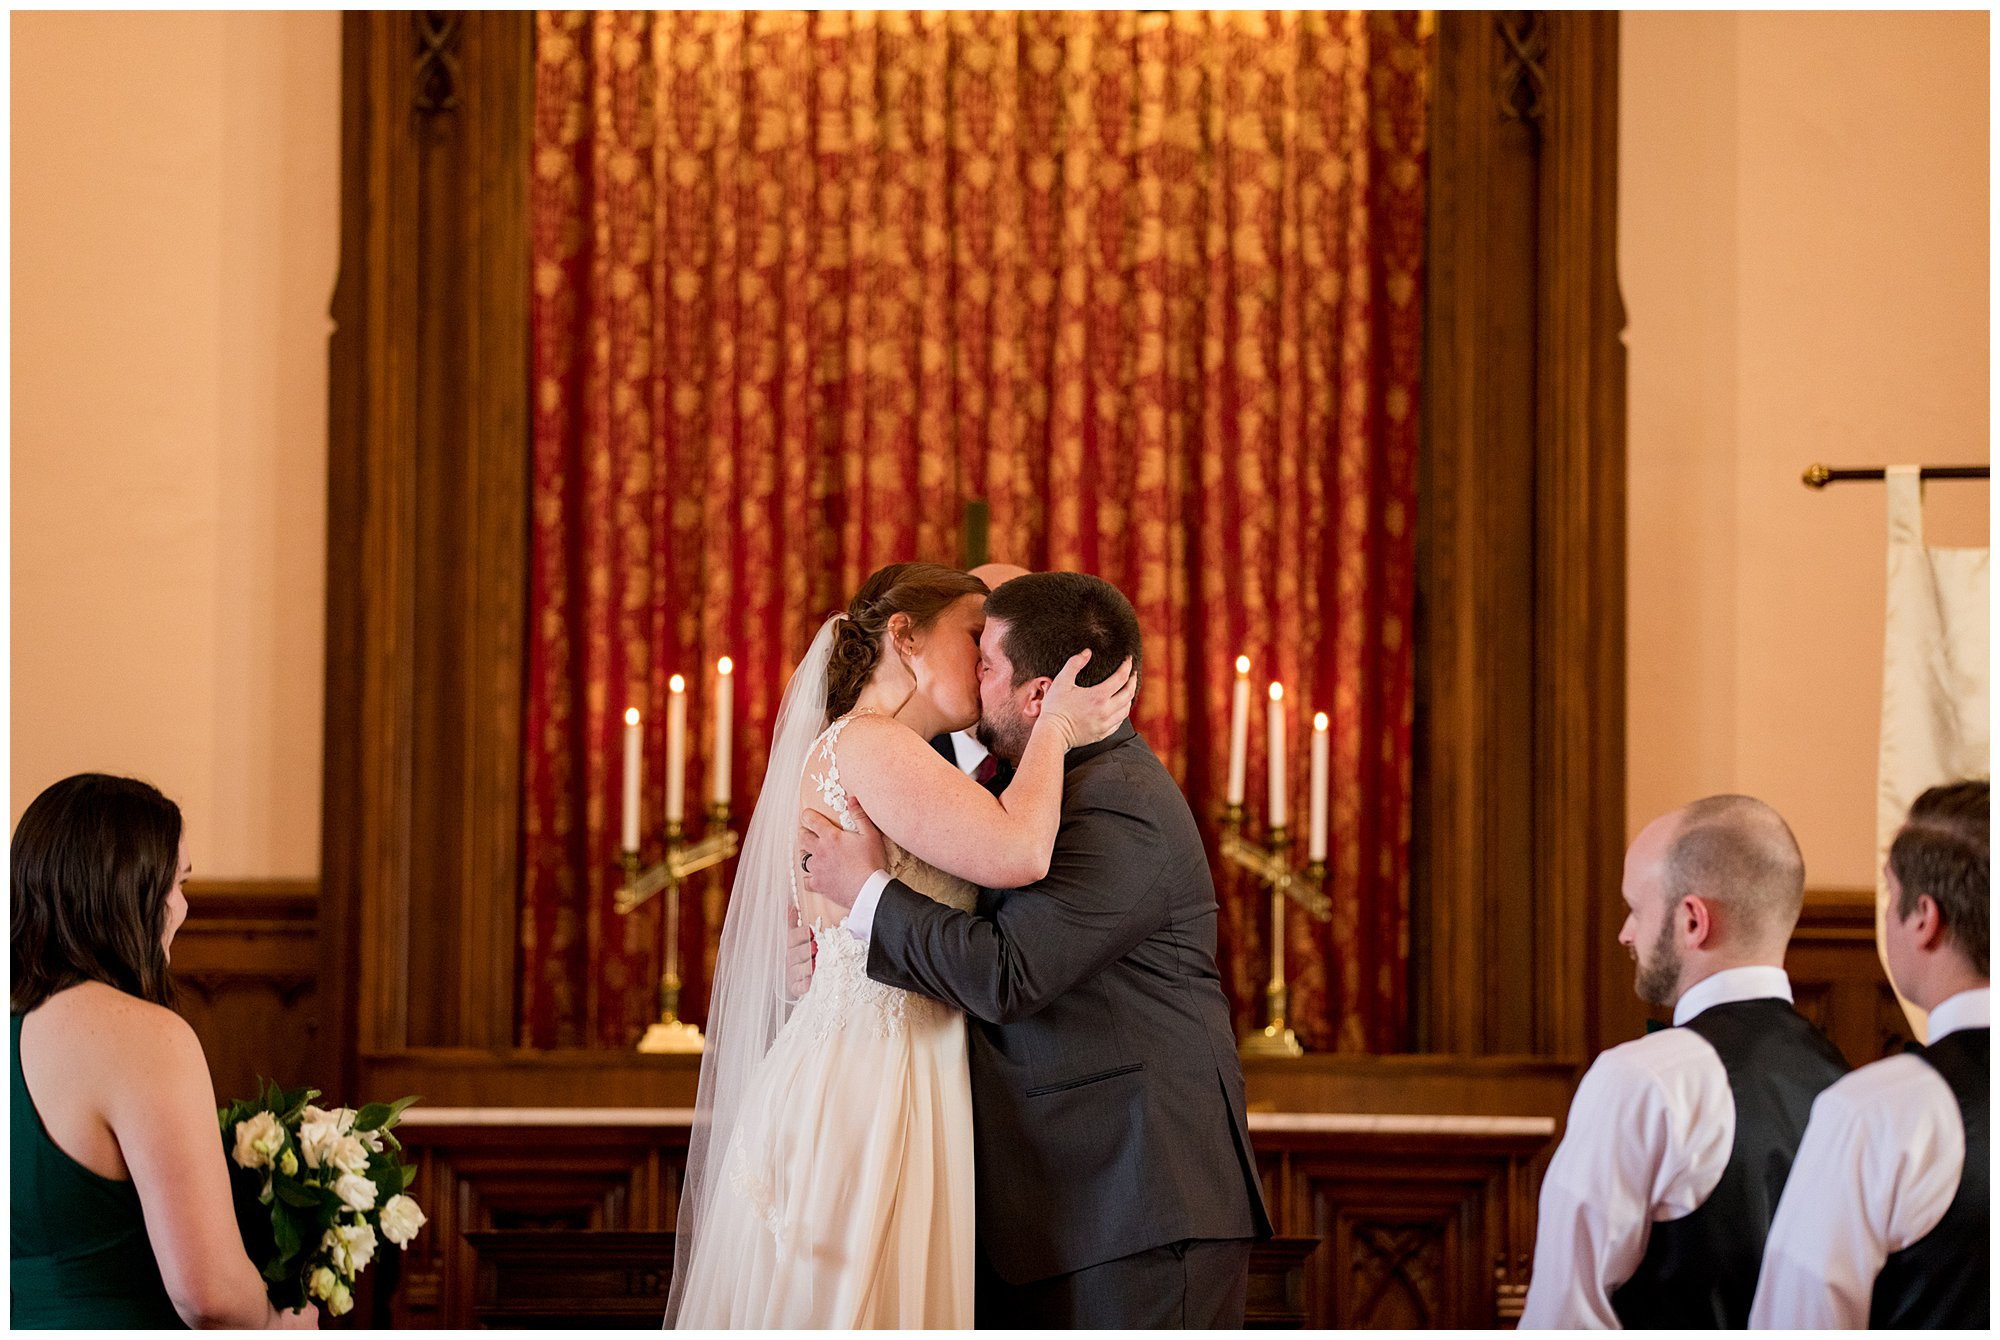 bride and groom first kiss at Indianapolis wedding ceremony